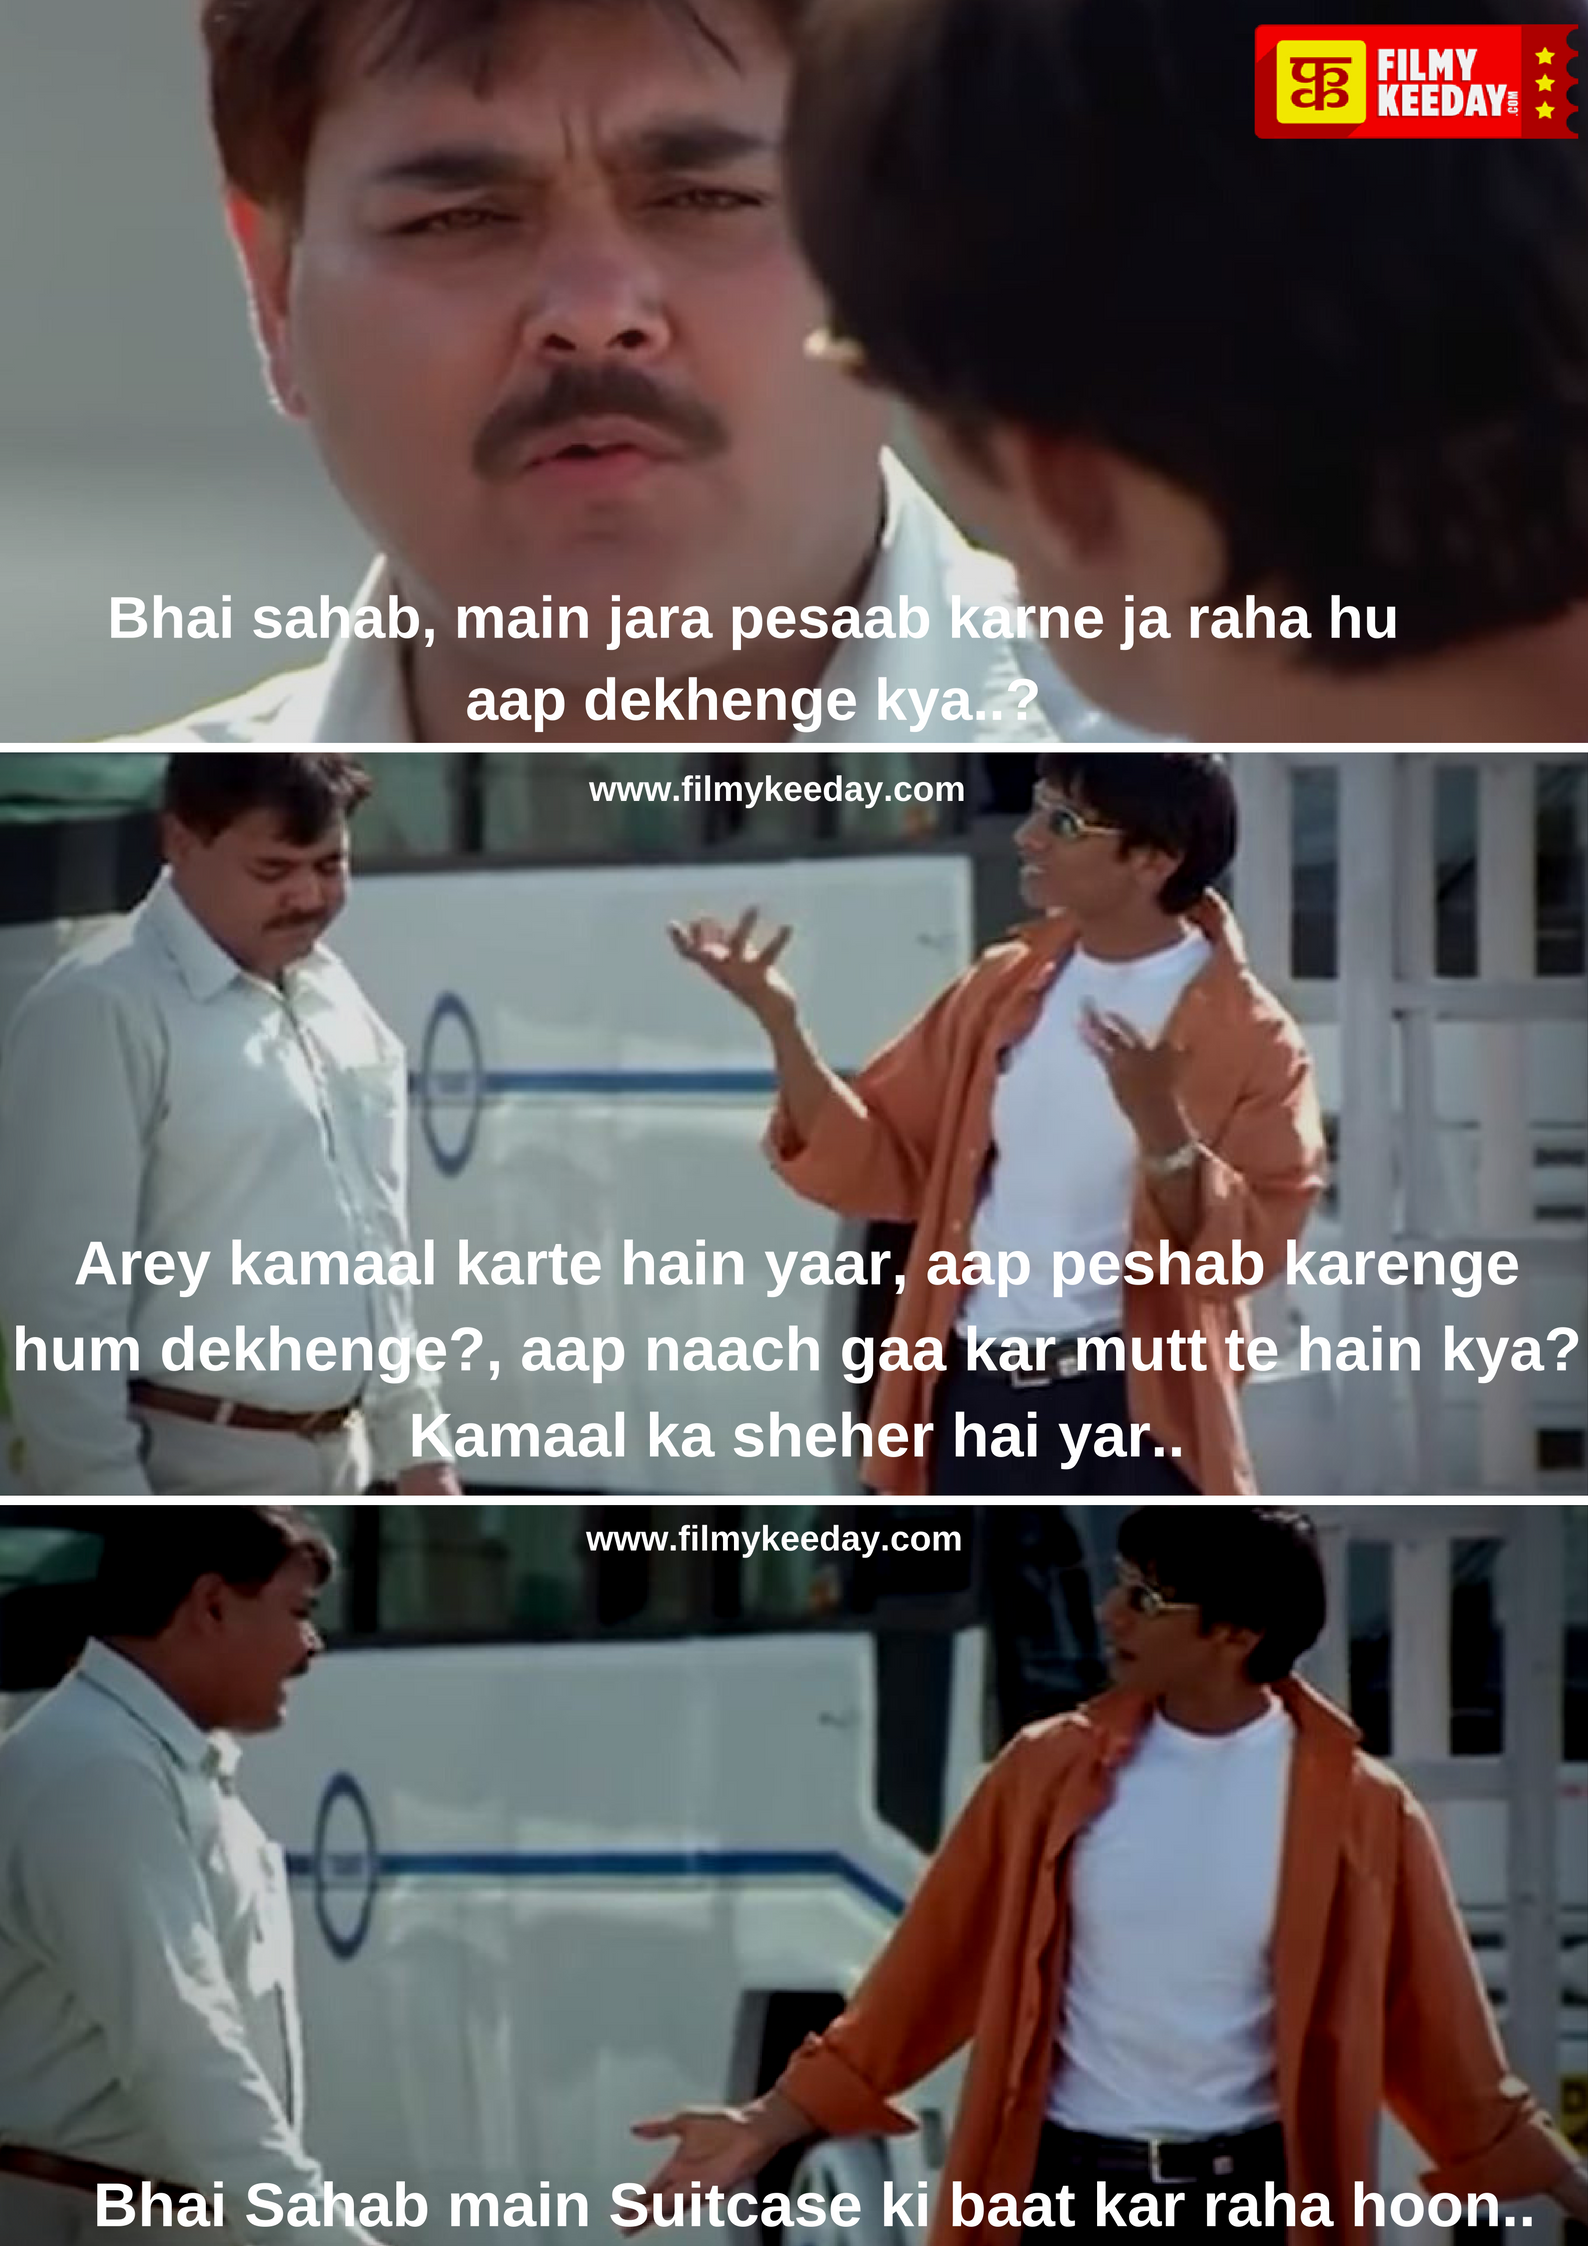 Vijay Raaz Comedy Dialogues In The Film Run Starring Abhishek Bachchan And Bhumika Chawla Strong Mind Quotes Movie Dialogues Dialogue